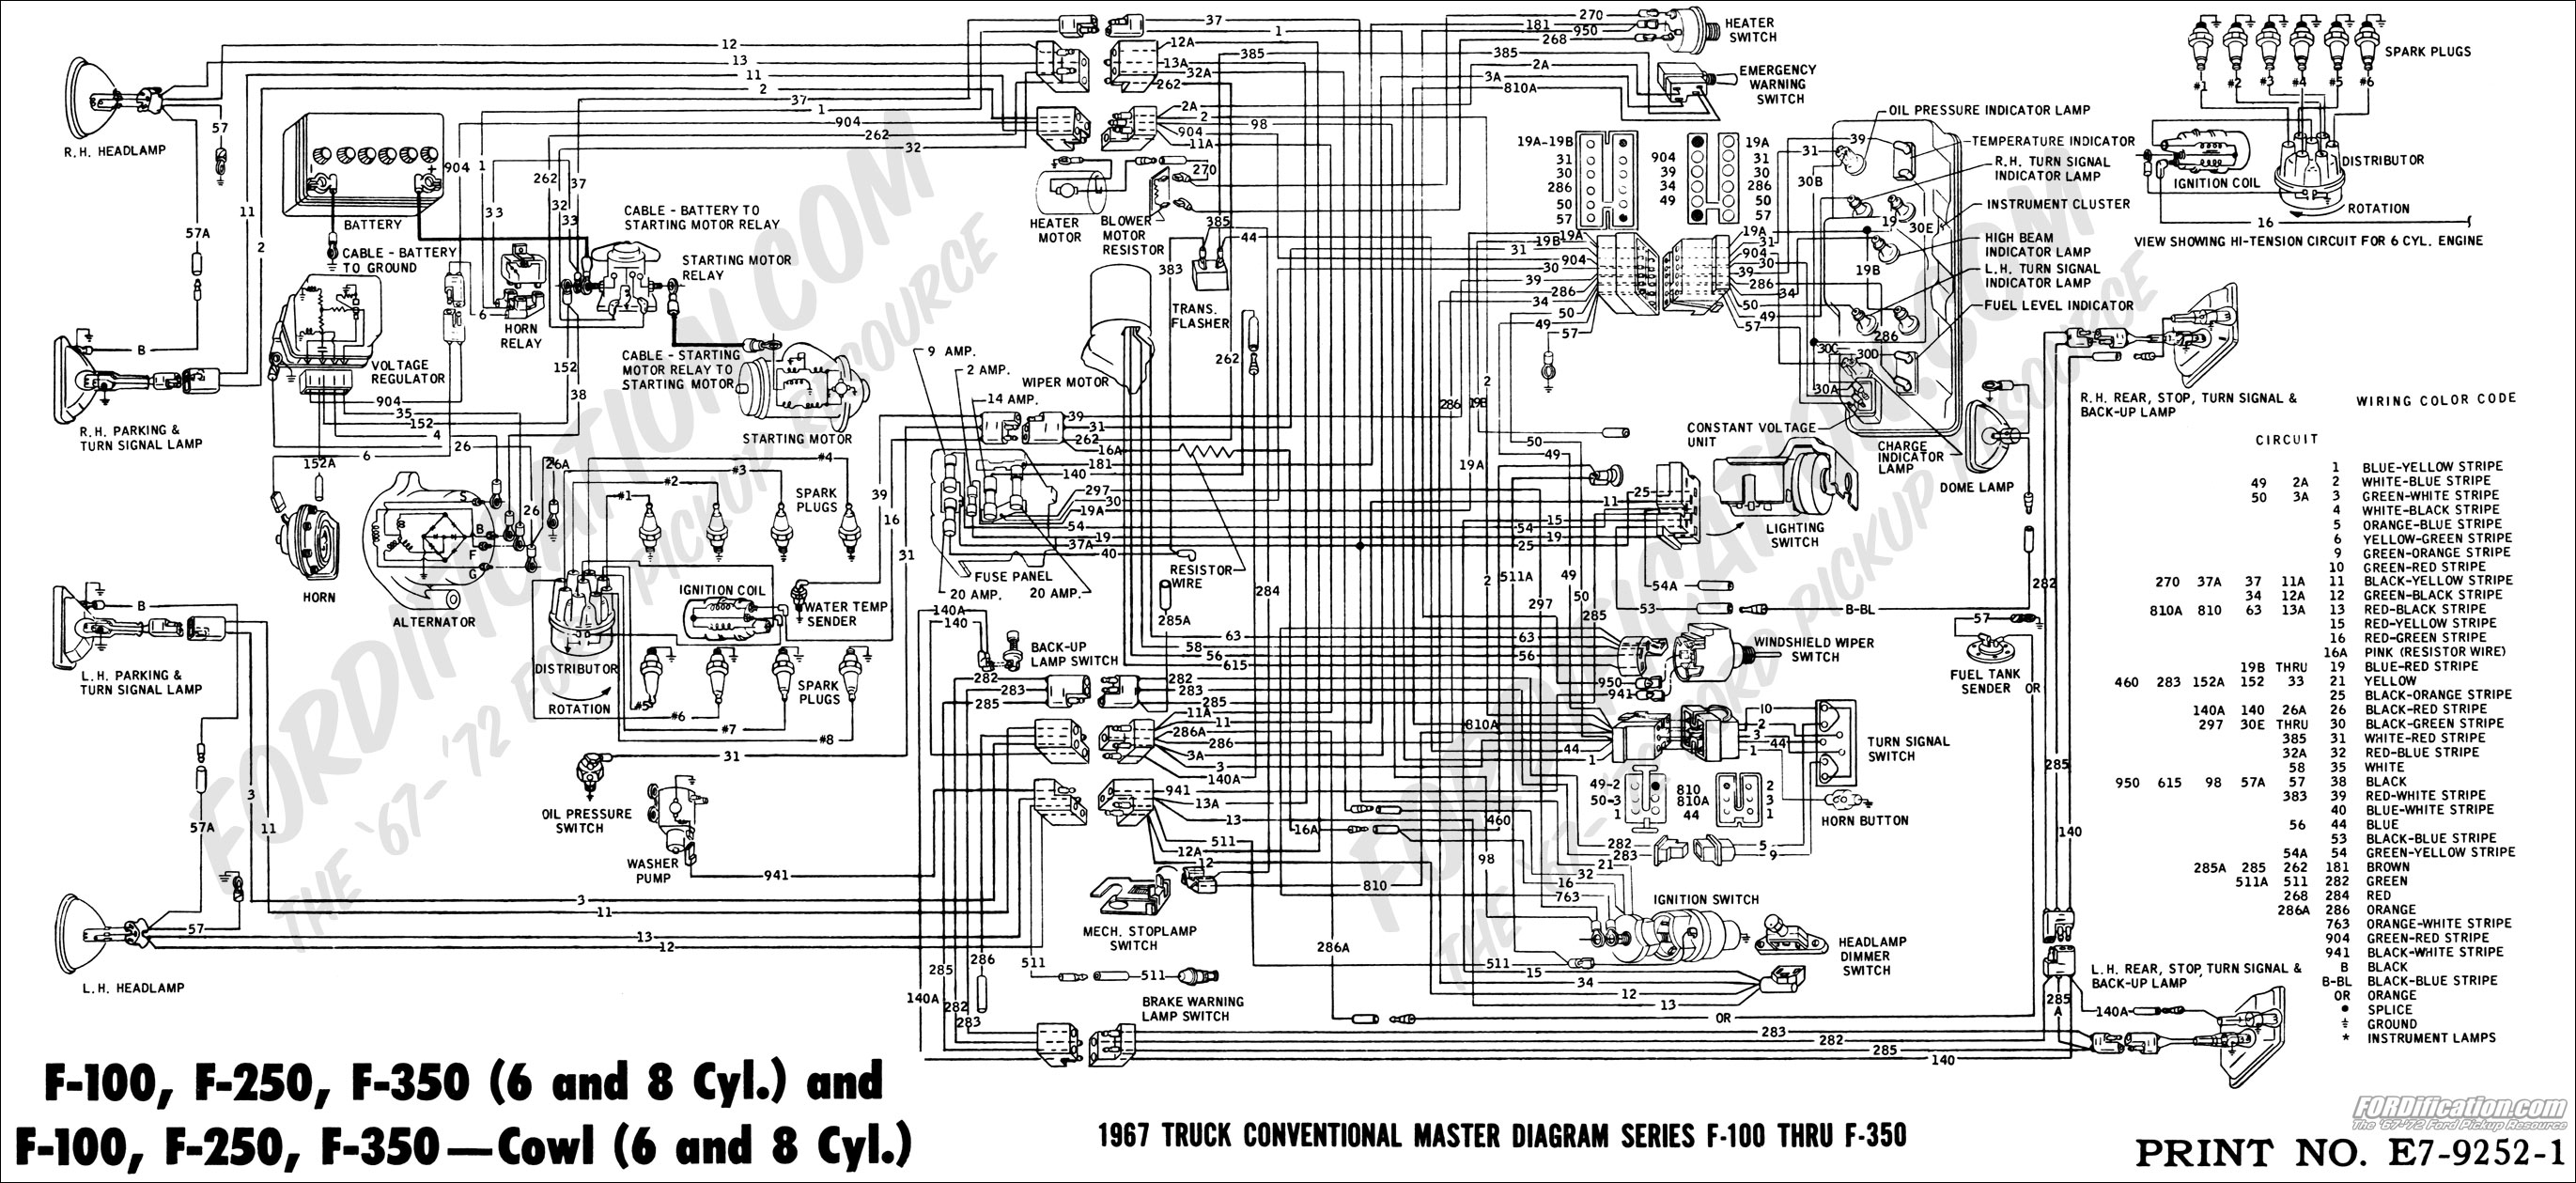 67masterdiagram ford truck technical drawings and schematics section h wiring free ford wiring diagrams at soozxer.org